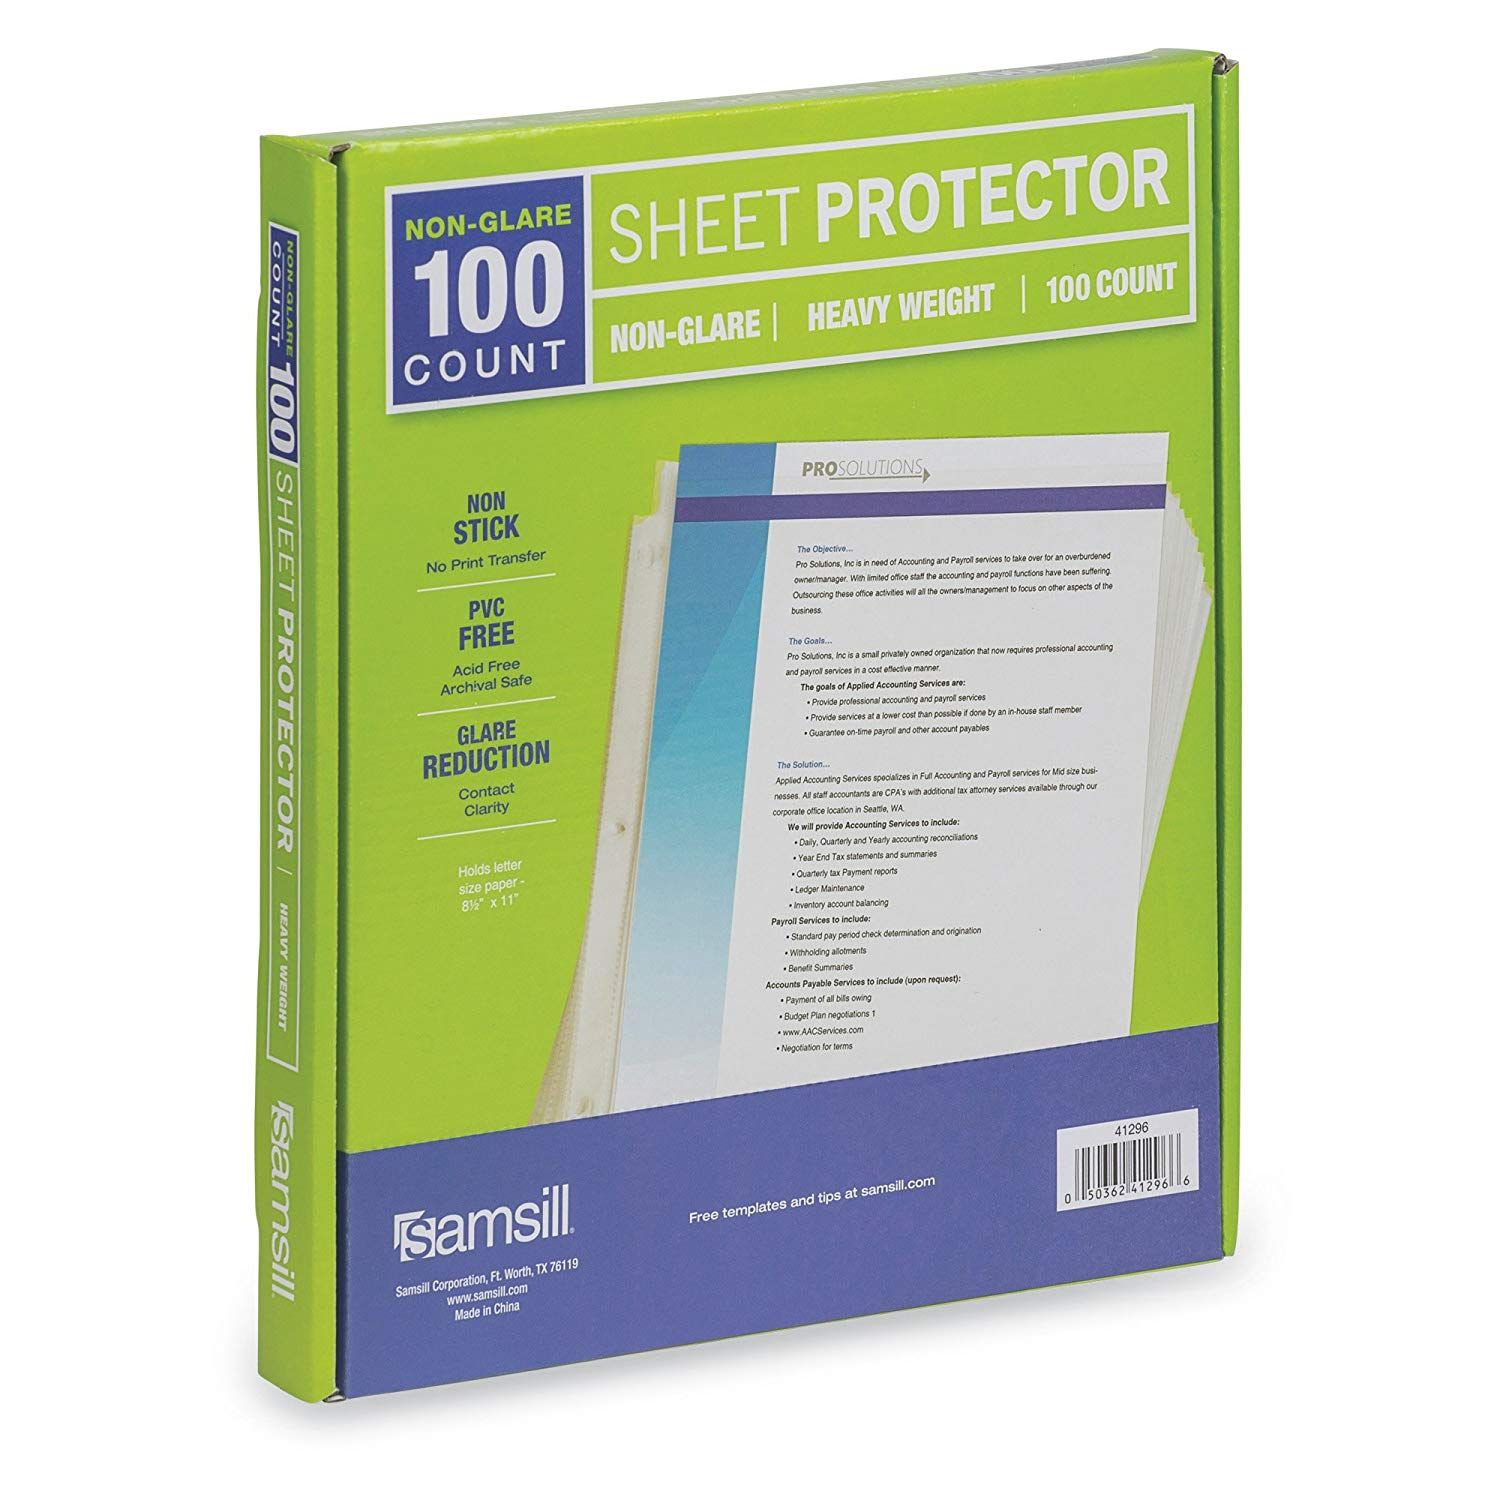 Samsill 100 Non Glare Heavyweight Sheet Protectors Reinforced 3 Hole Design Plastic Page Protectors Arc Sheet Protectors Business Card Sleeve Page Protectors